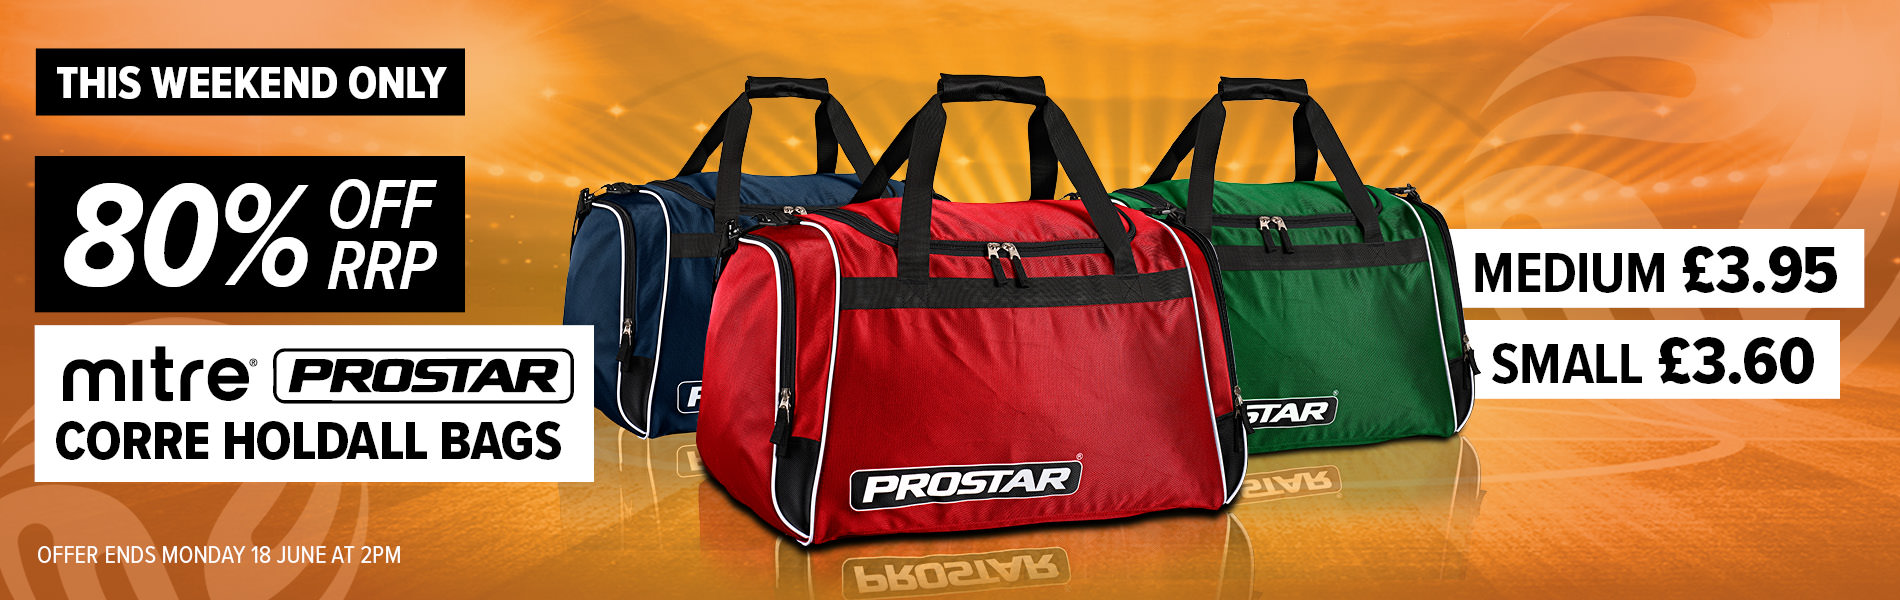 Weekend Deal - Prostar Corre Holdalls 80% off RRP